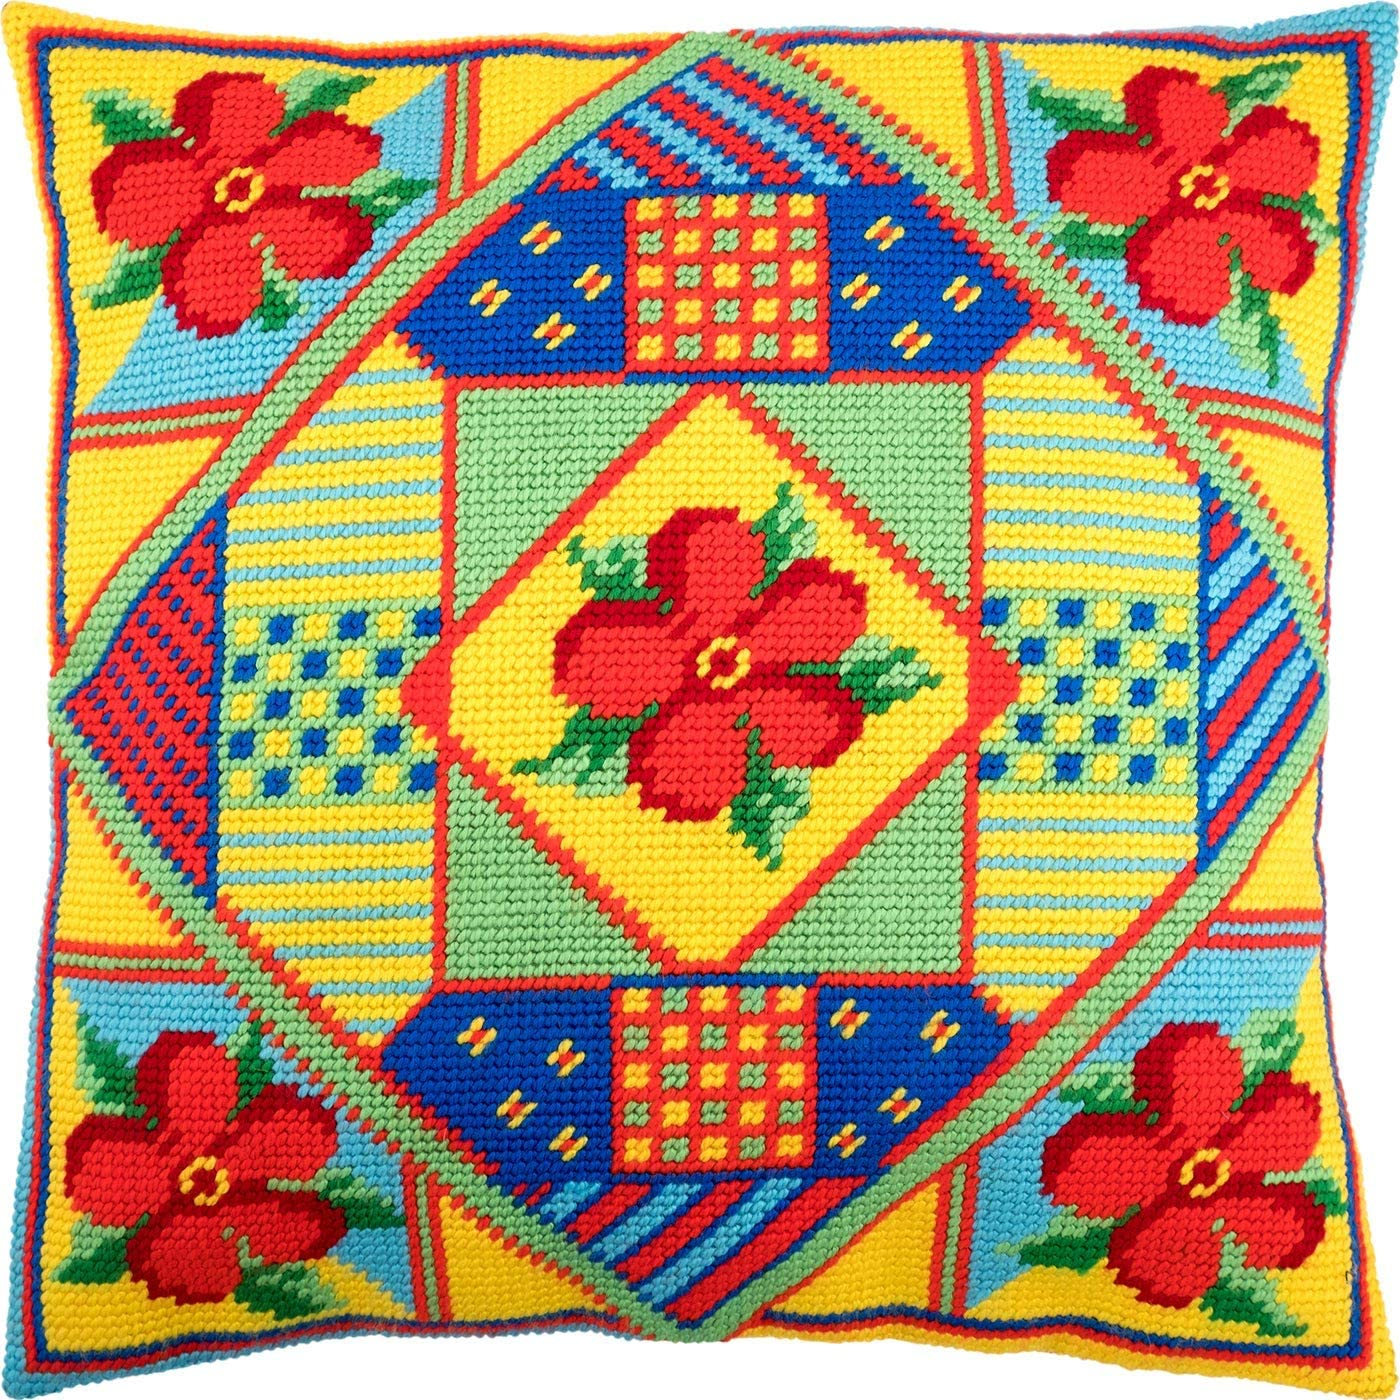 Flowers European Quality Needlepoint Kit Printed Tapestry Canvas Throw Pillow 16/×16 Inches